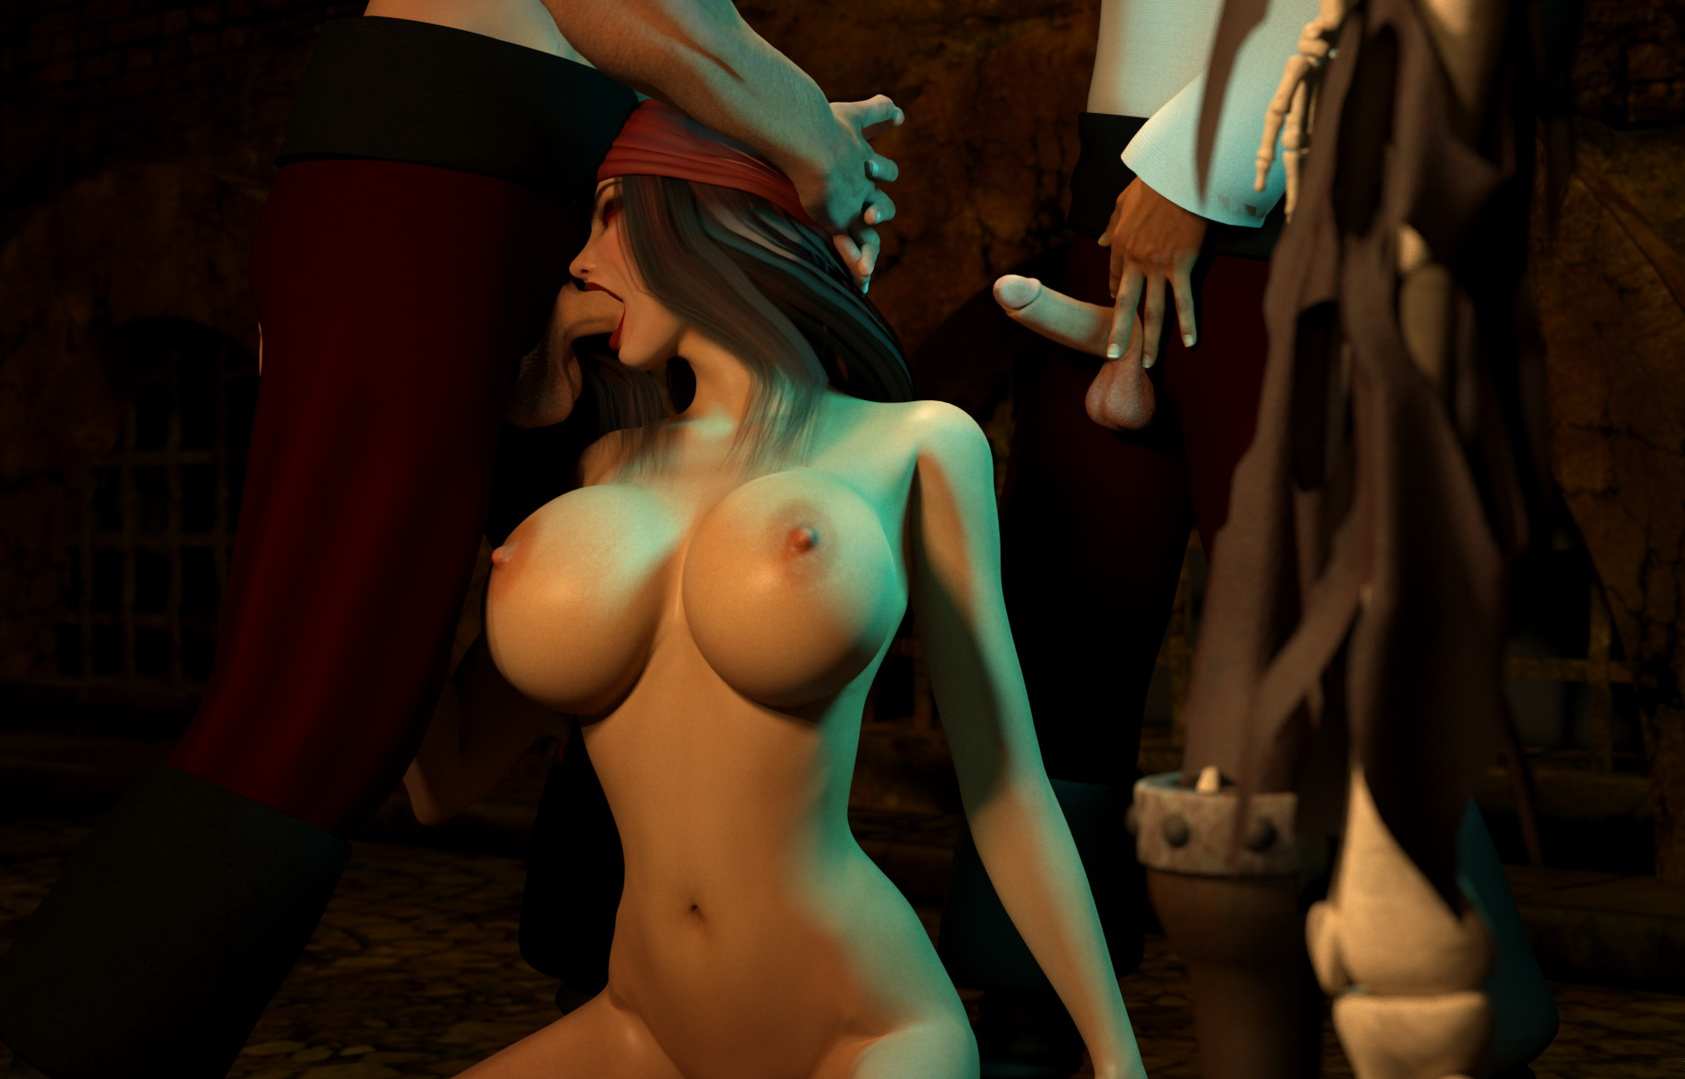 Pirate of carbian porn cartoon nude pictures sexual galleries